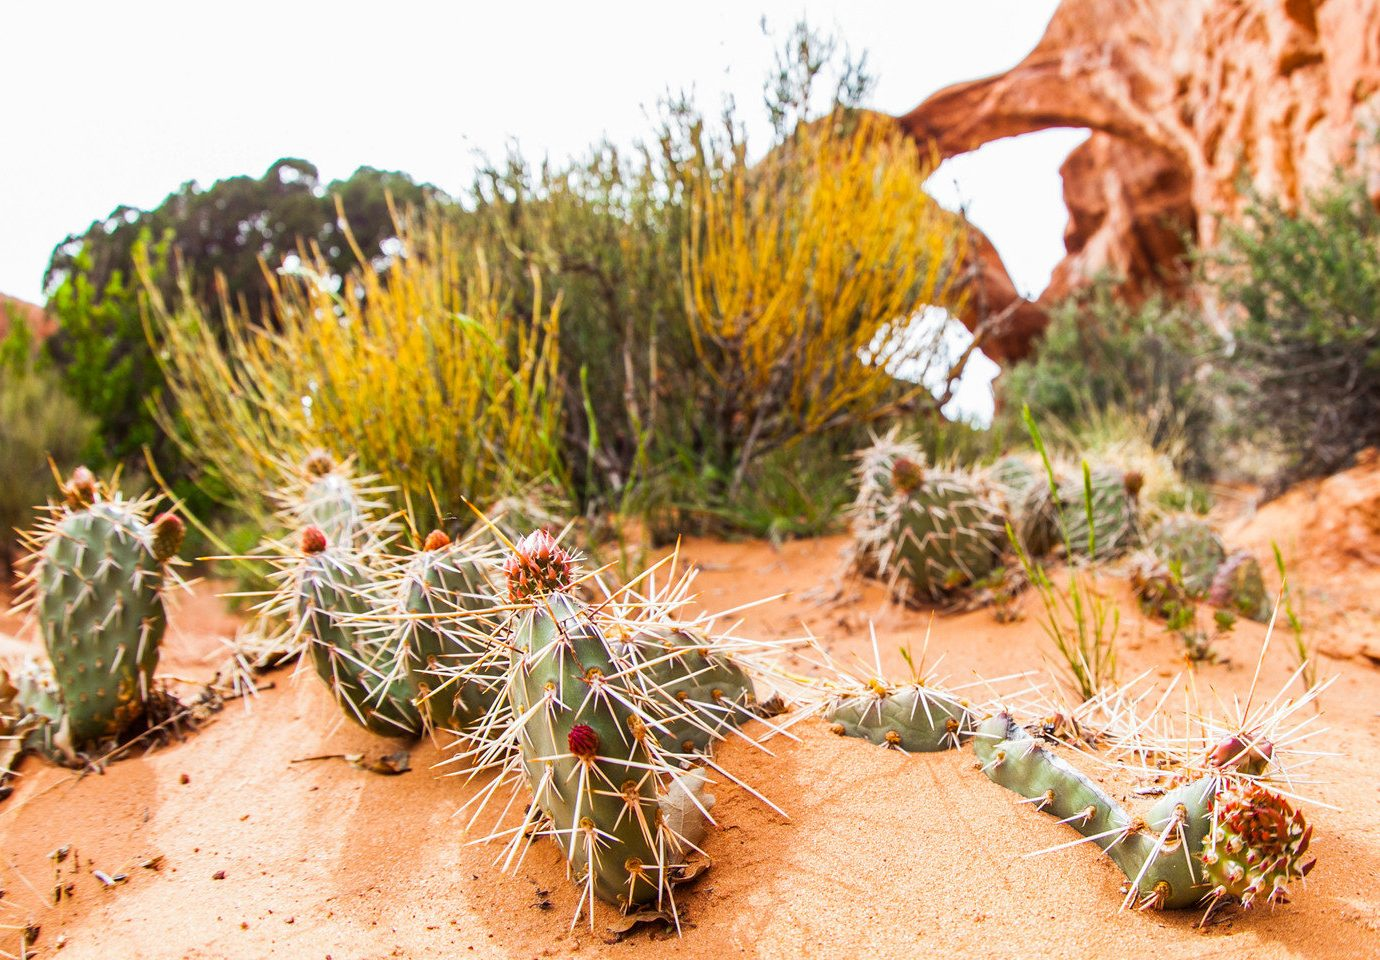 Family Travel National Parks Outdoors + Adventure Road Trips Trip Ideas cactus ground outdoor plant flora botany land plant flowering plant flower grass family prickly pear caryophyllales